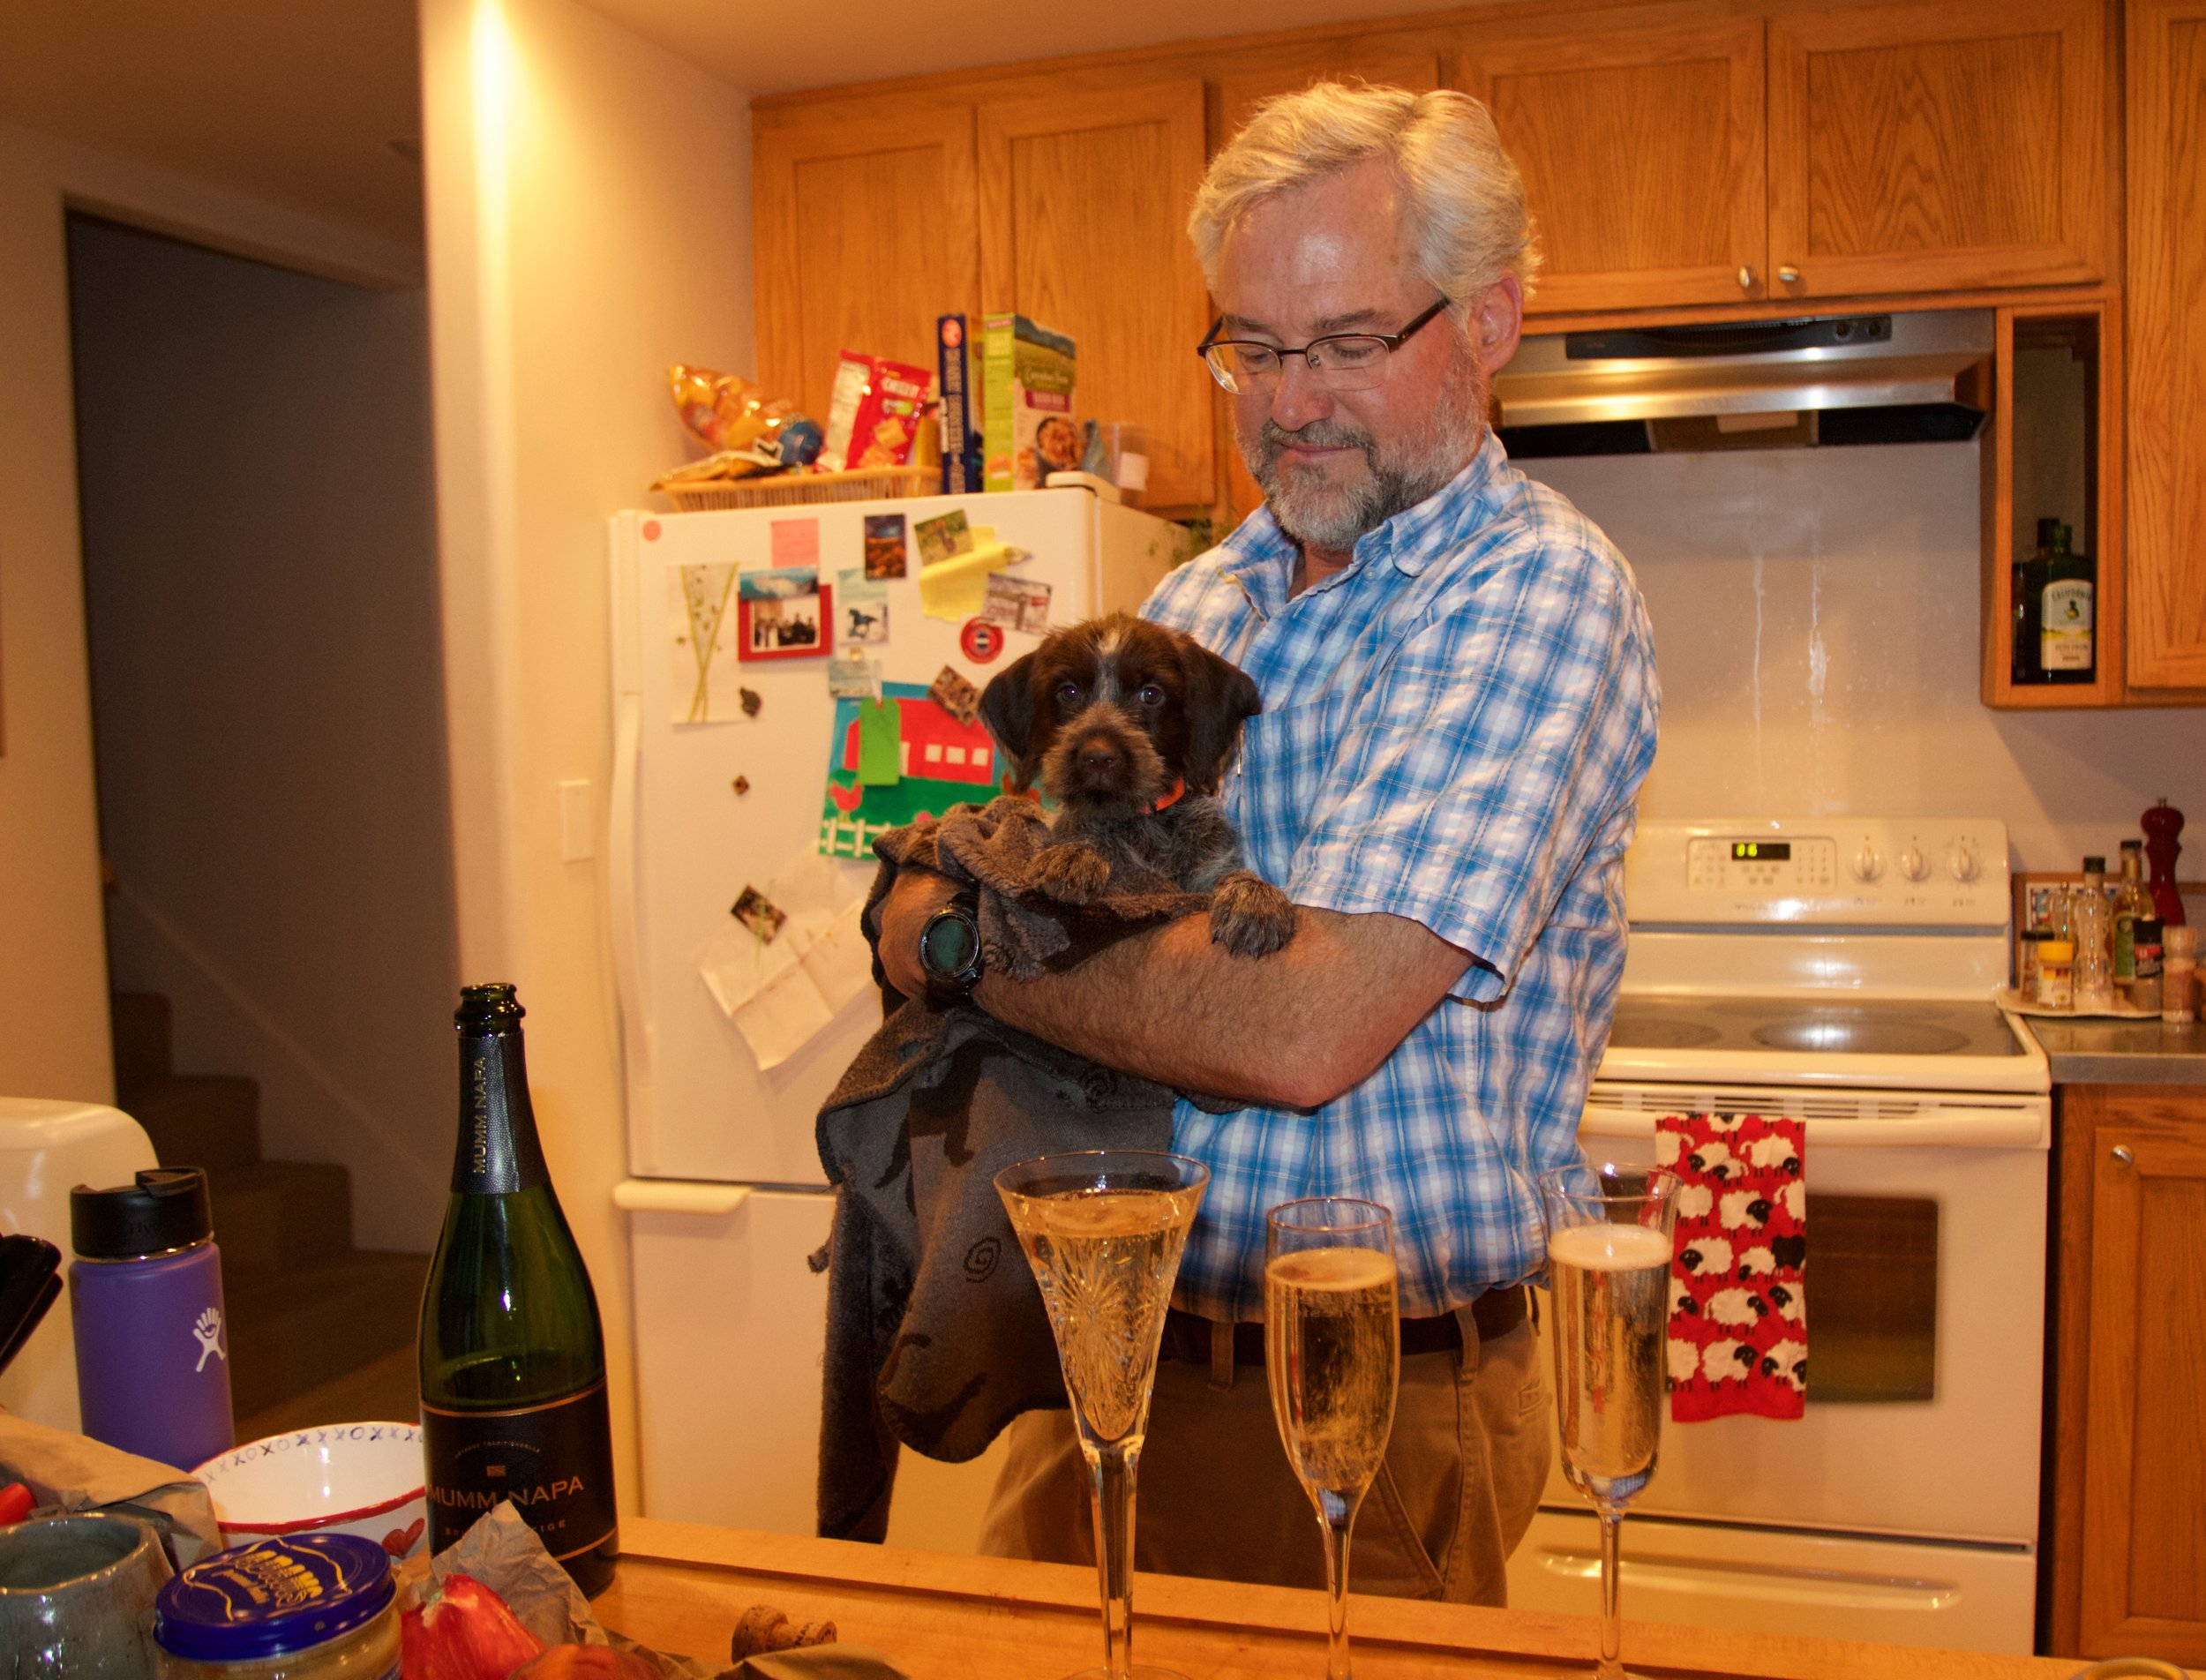 My dad very sweetly brought home a bottle of champagne to celebrate Sally's arrival!